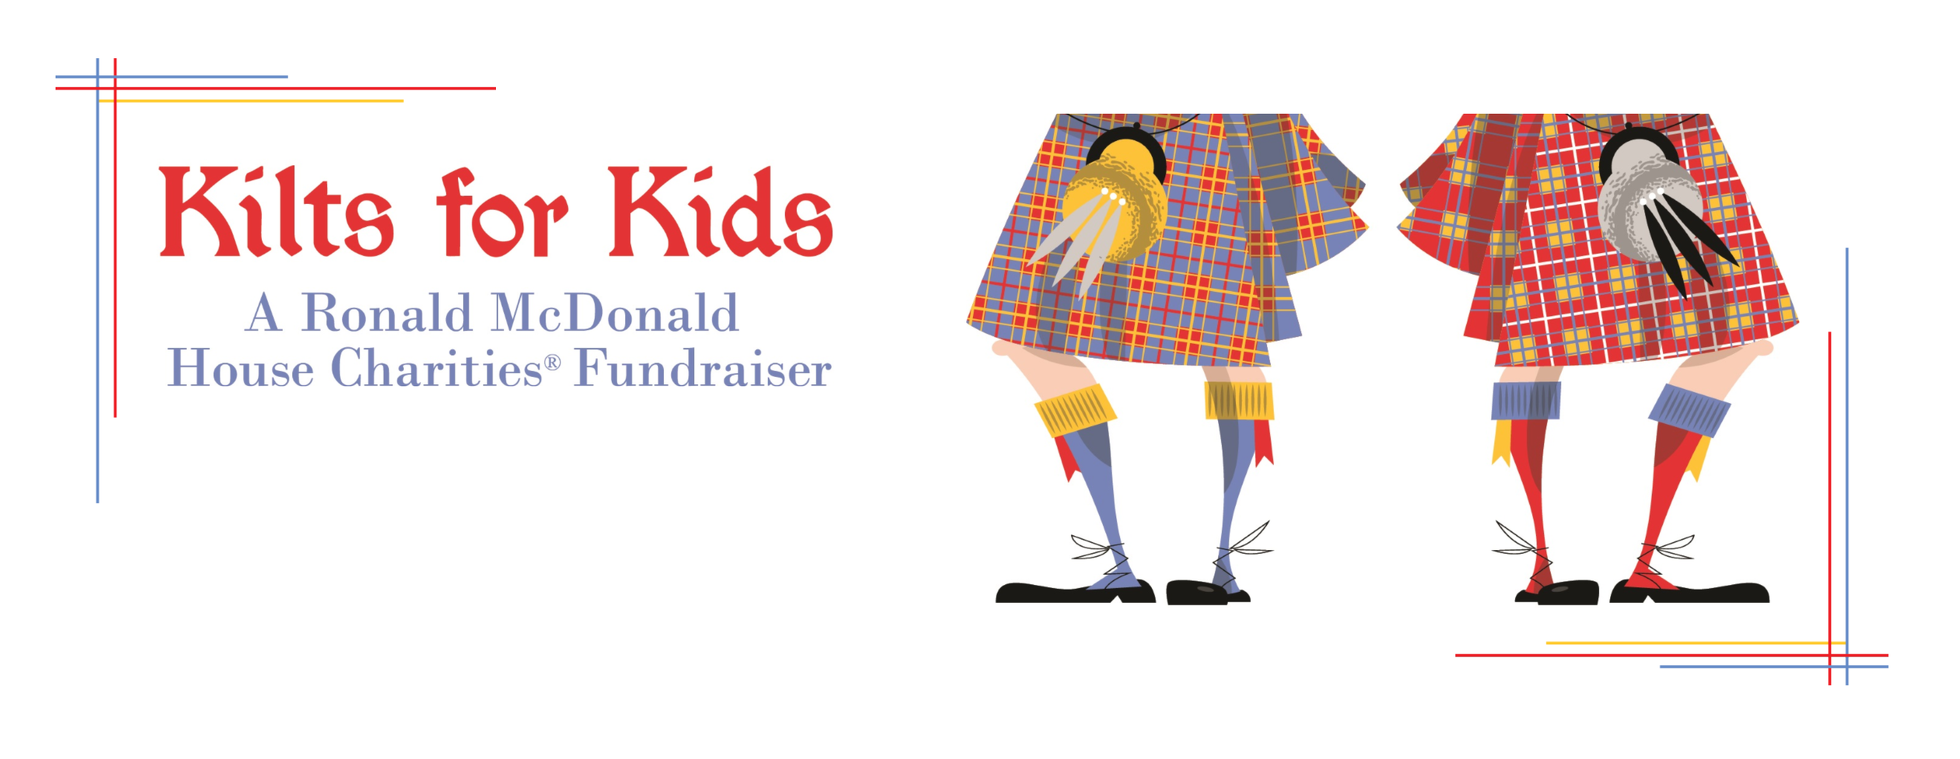 9th Annual Kilts for Kids